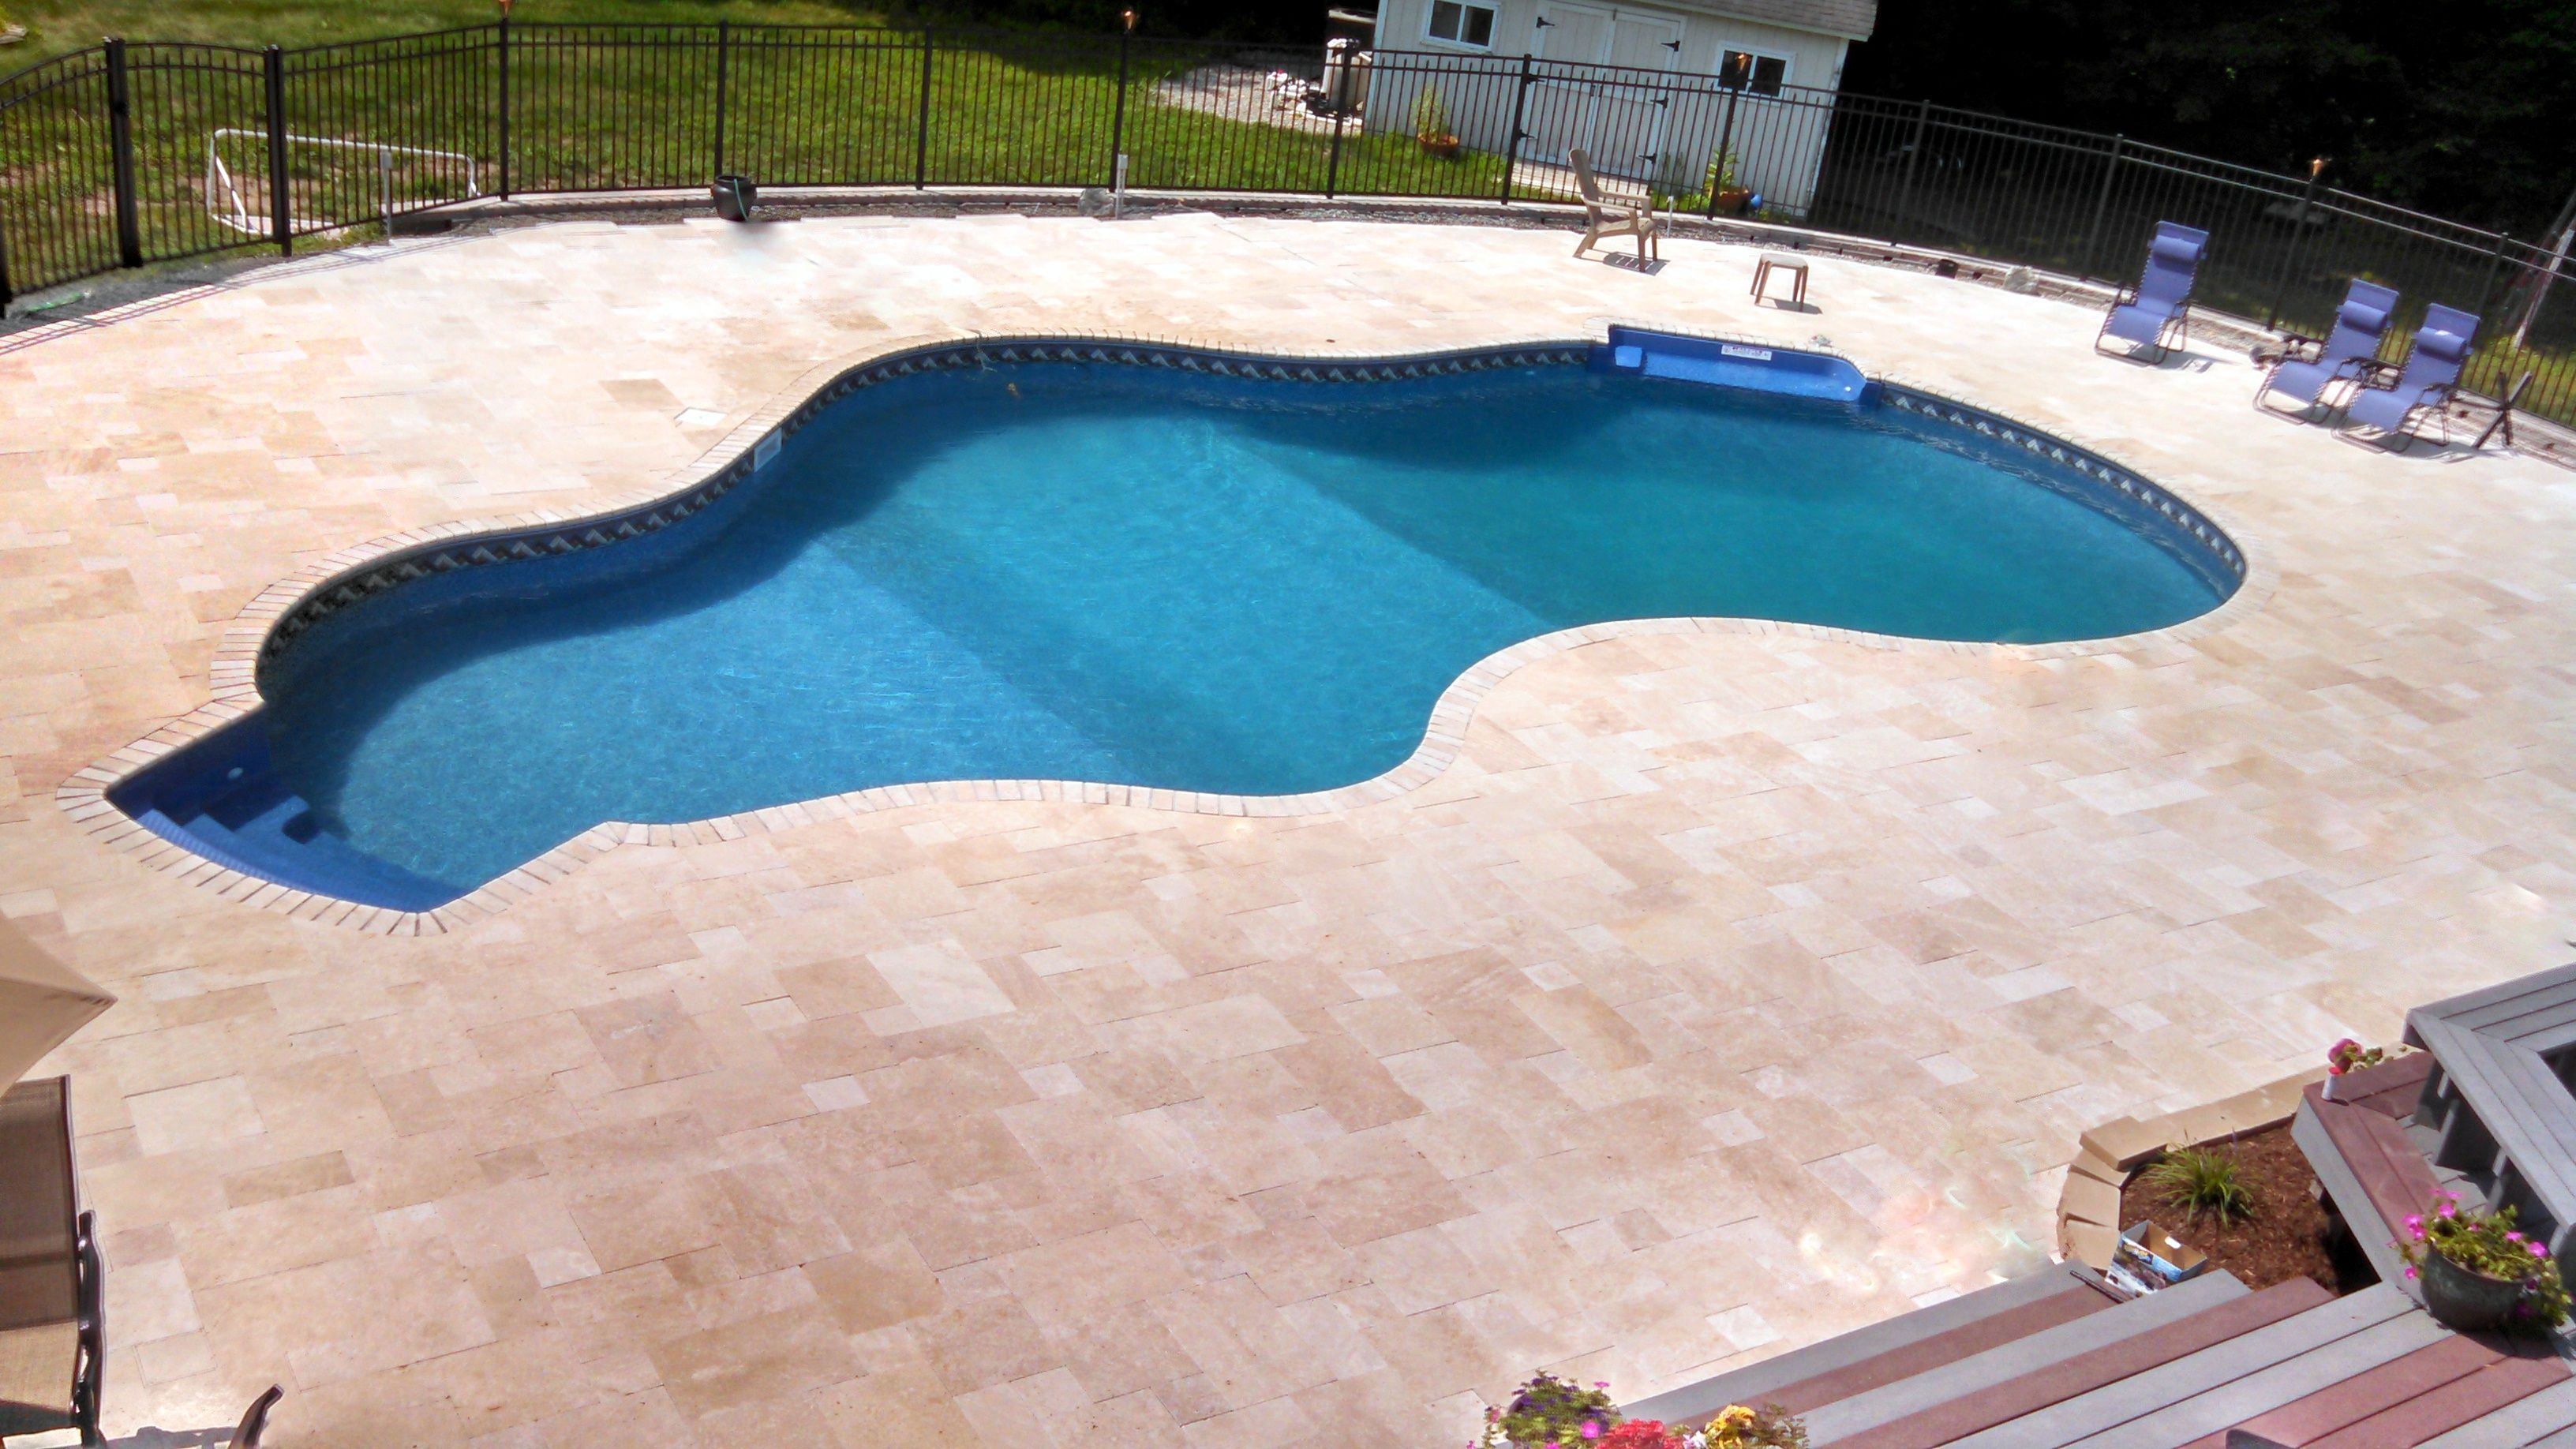 Travertine Pool Deck Ivory Travertine Pool Deck & Coping  Travertine Oasis  Pinterest